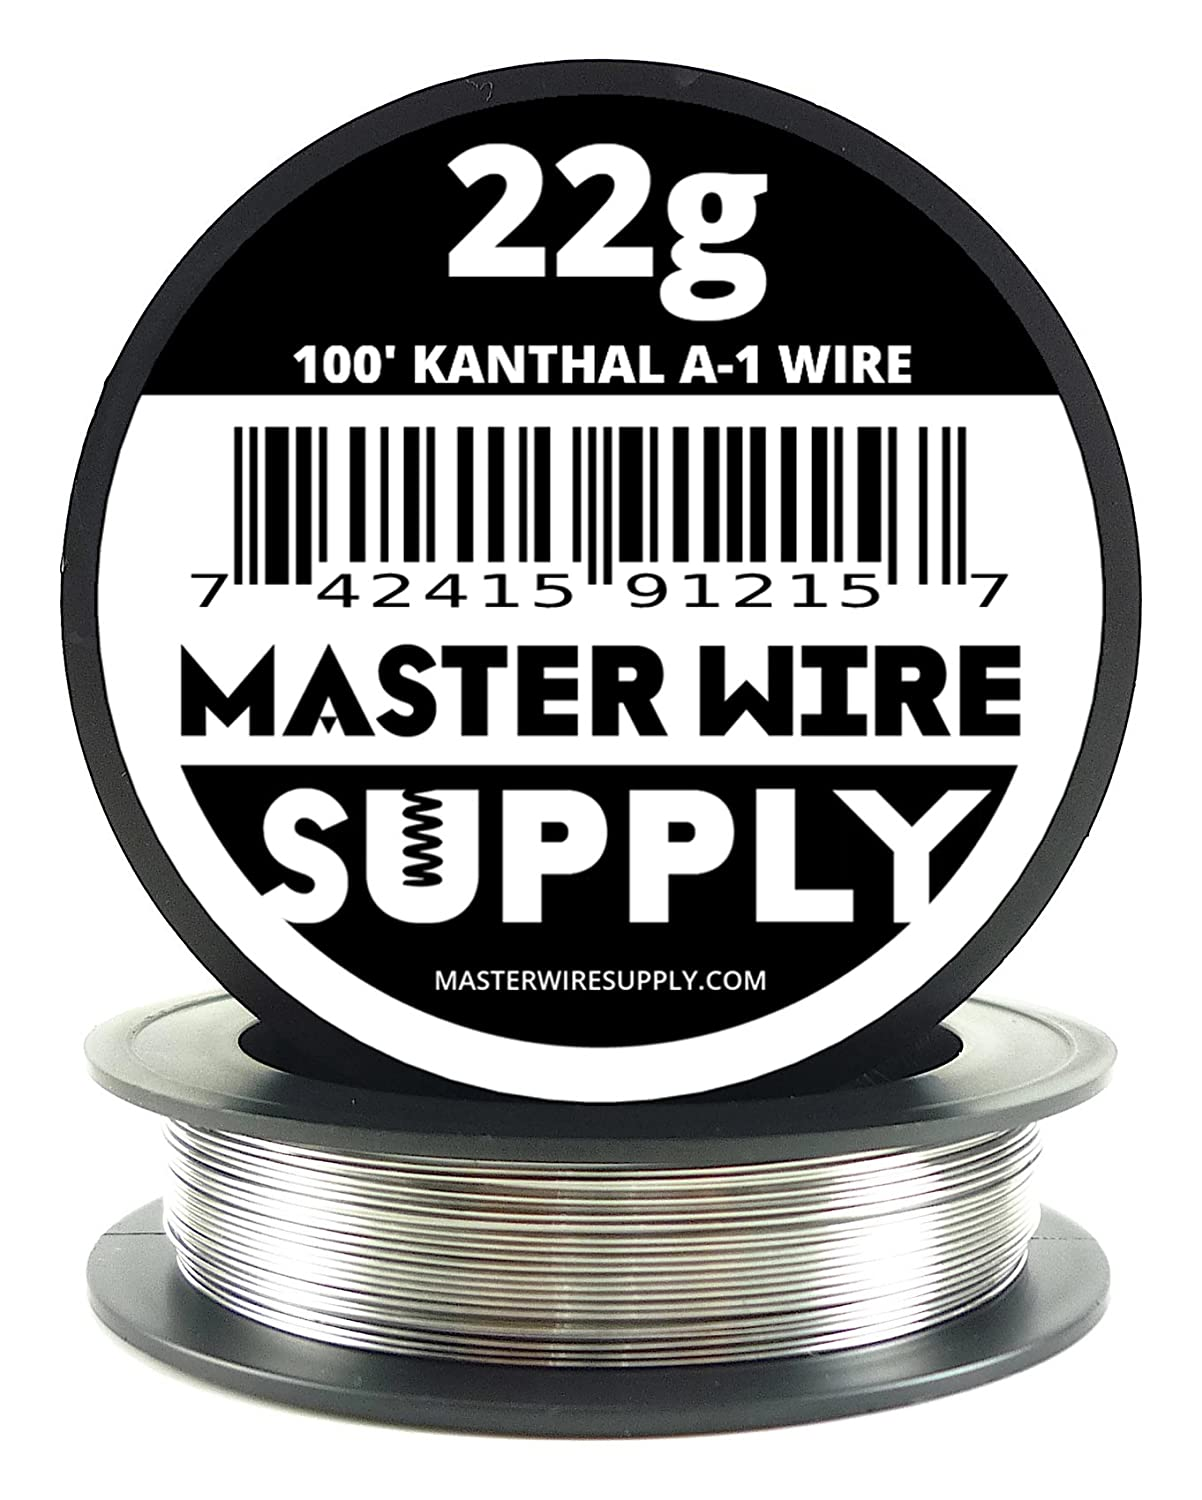 Kanthal A1-100' - 22 Gauge Resistance Wire Master Wire Supply